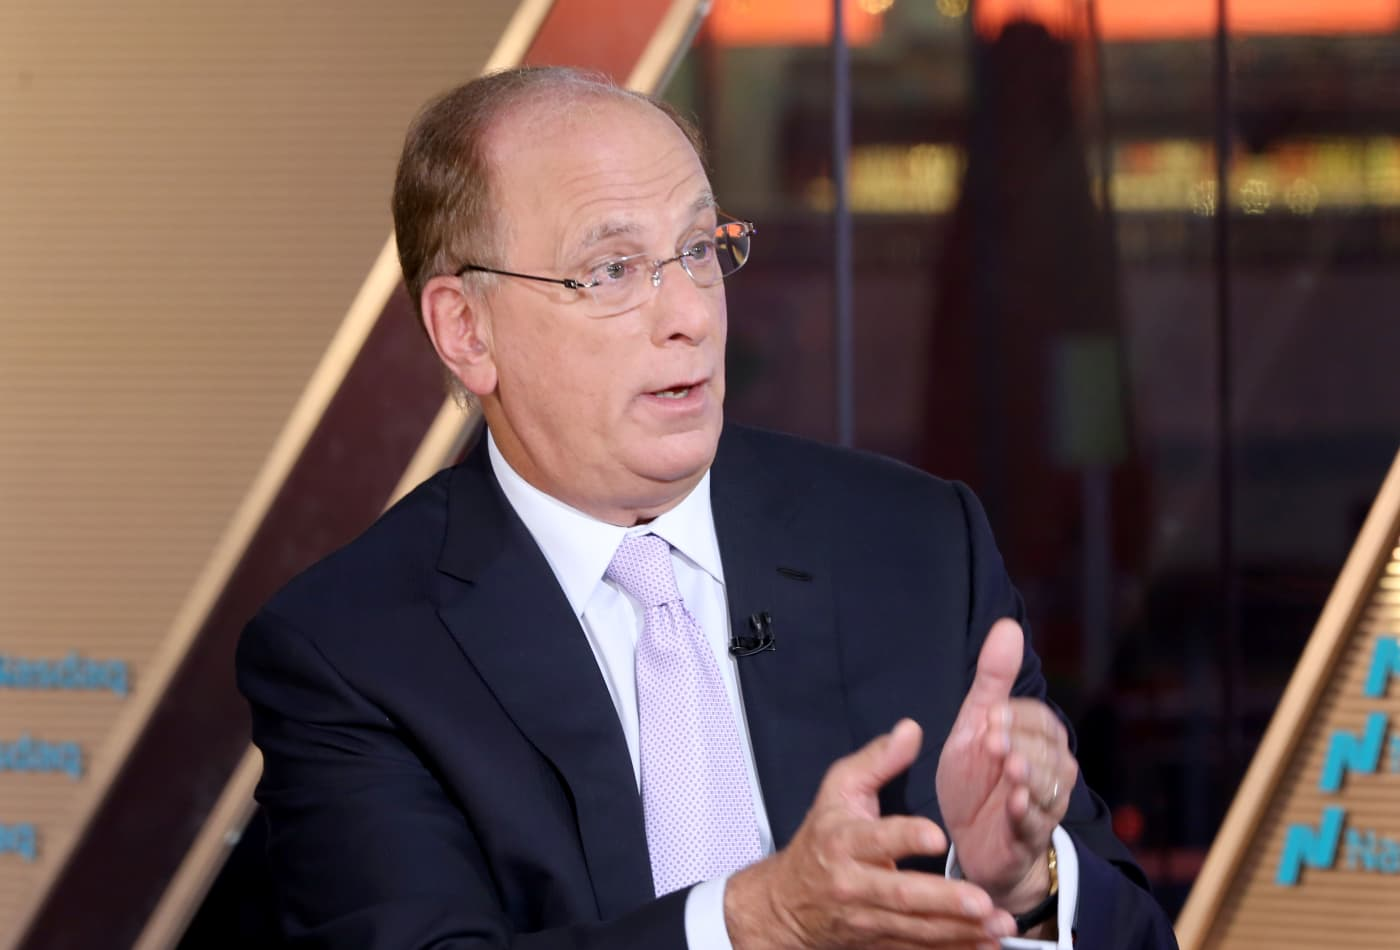 BlackRock CEO Larry Fink calls a bottom in stocks (for now), but warns about geopolitical risks